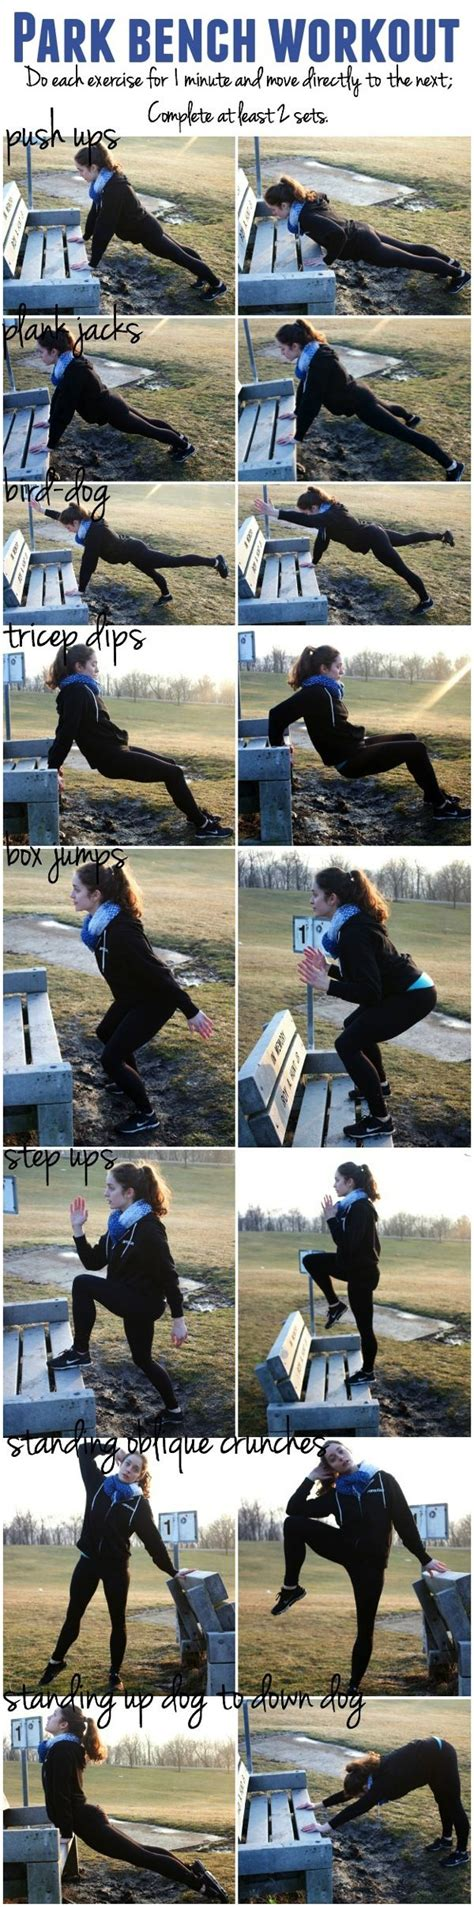 park bench exercises park bench workout body workouts full body and bench